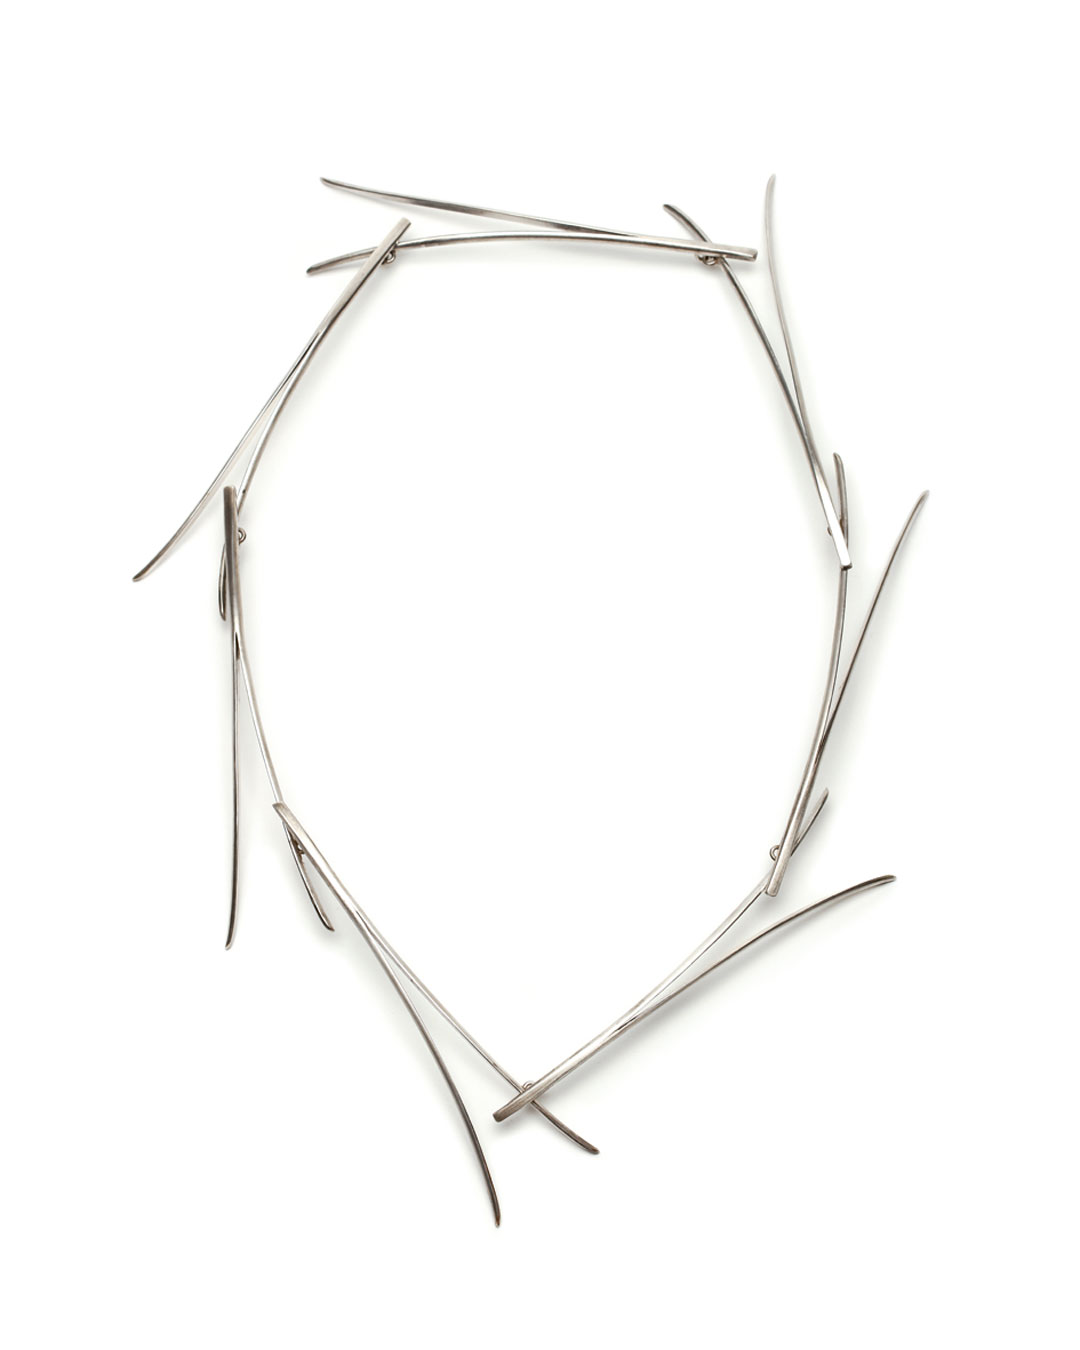 Silke Trekel, Föhren (Pines), 2016, necklace; silver, 320 x 235 x 20 mm, €3880